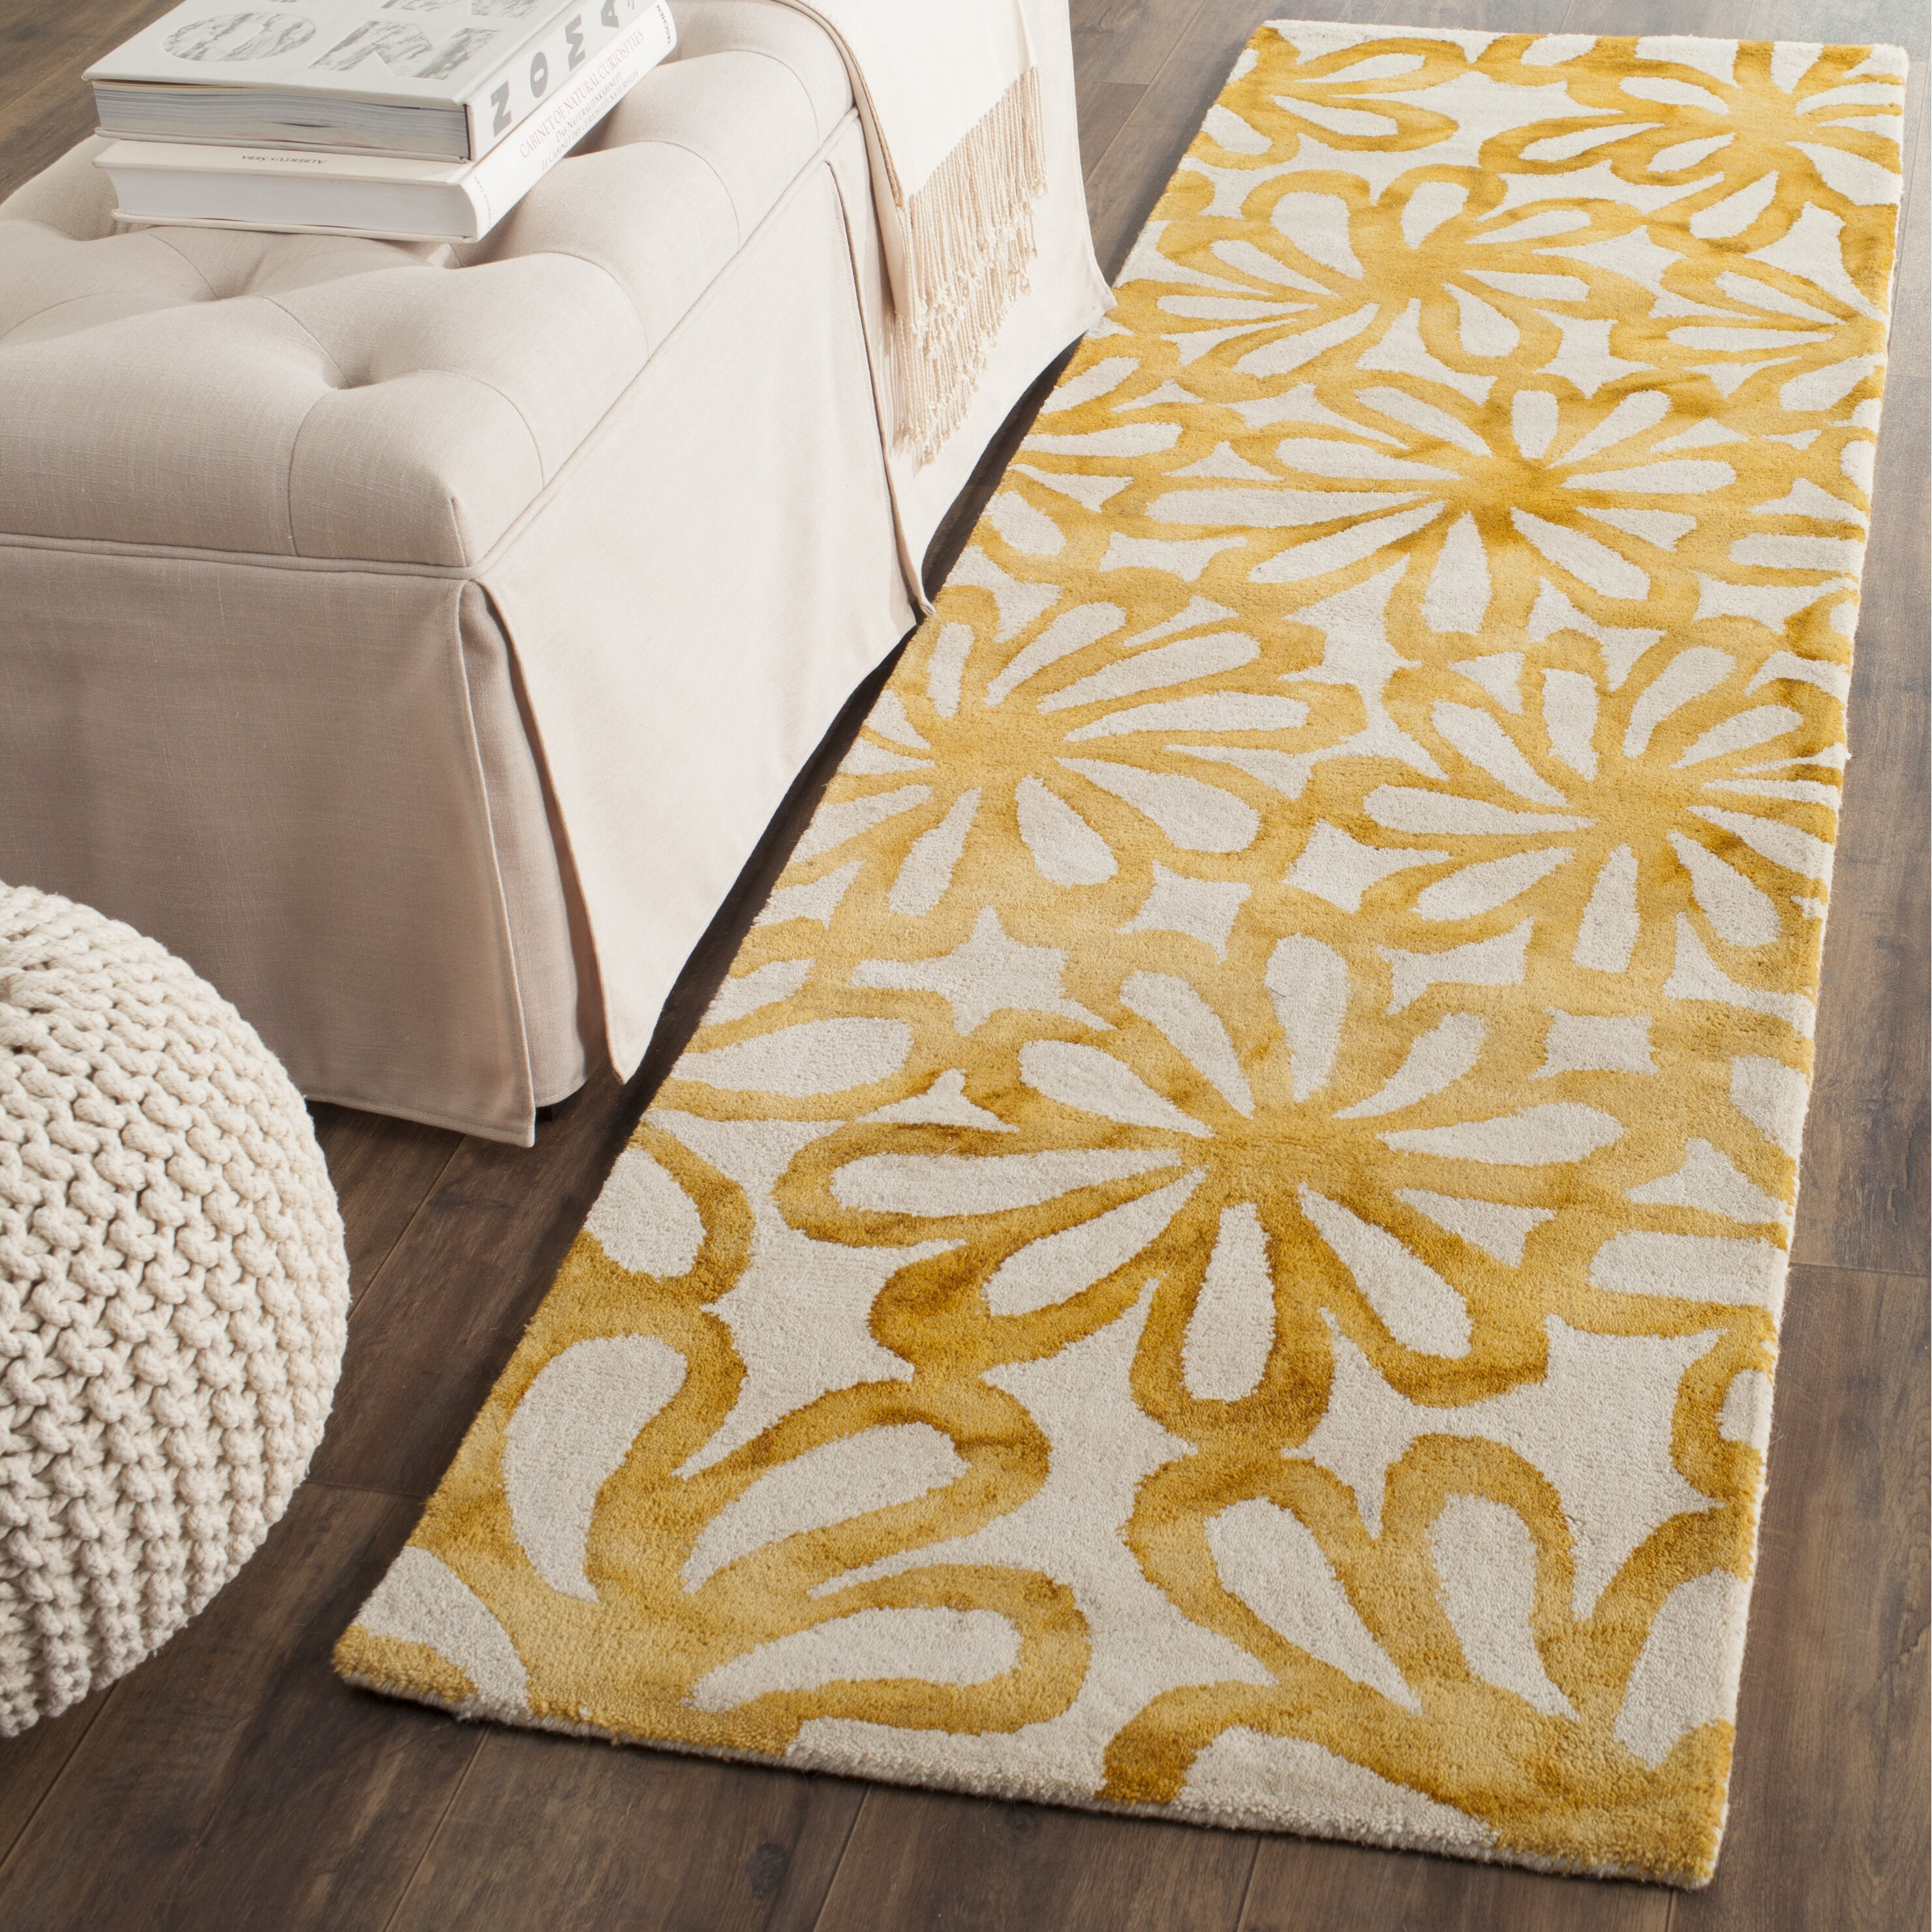 Stella Collection Hand Tufted Area Rug In Beige Light: Bungalow Rose Hand-Tufted Beige & Gold Area Rug & Reviews